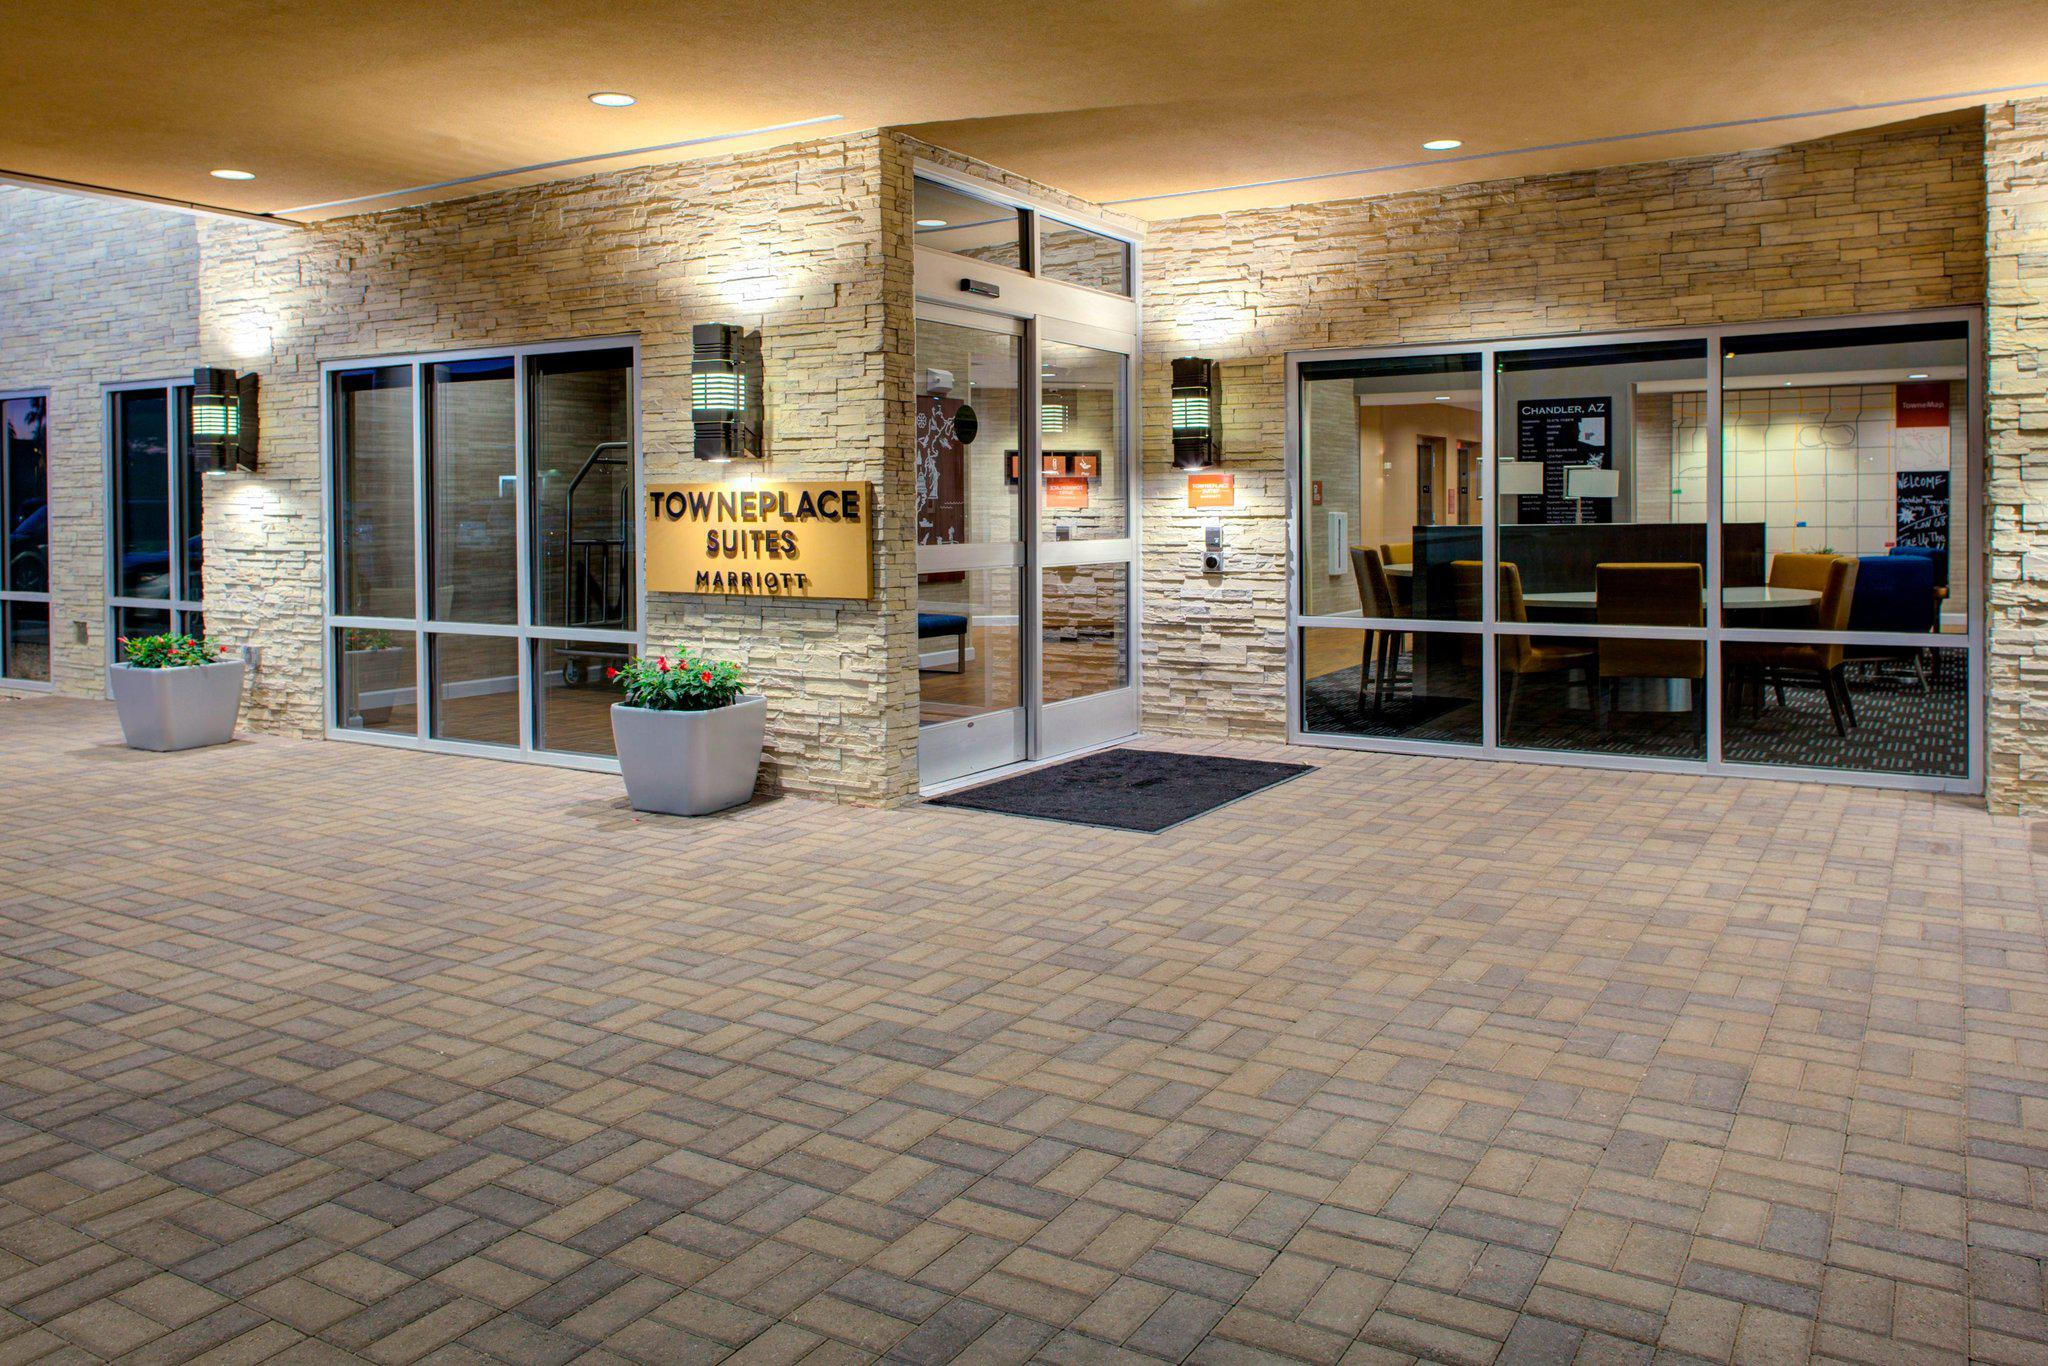 TownePlace Suites by Marriott Phoenix Chandler/Fashion Center